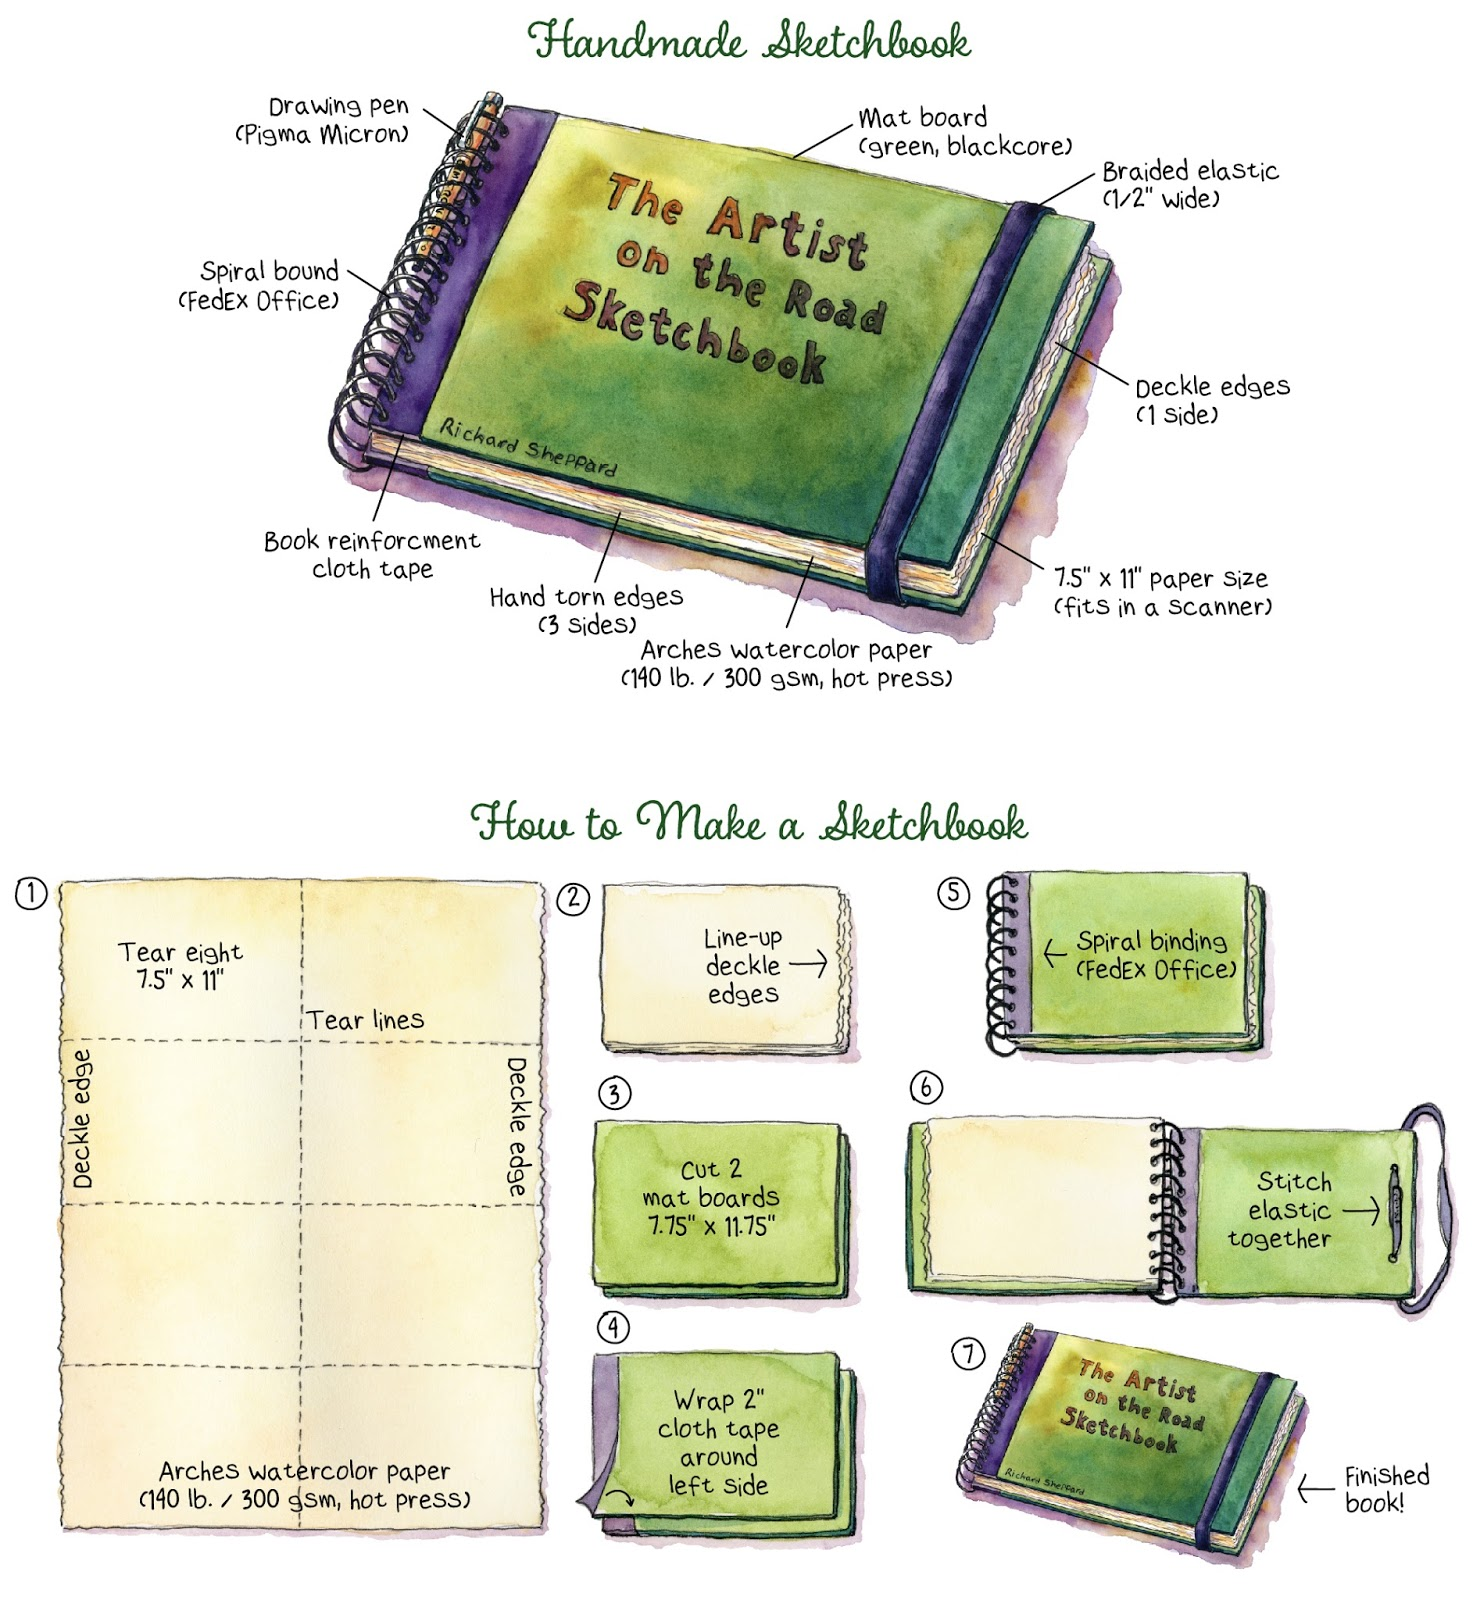 Watercolor books by search press - 1 Measure Out And Tear Using The Side Of A Ruler A Full Sheet 22 X 30 Of Arches Watercolor Paper Into Eight 7 5 X 11 Sheets A Full Sheet Is